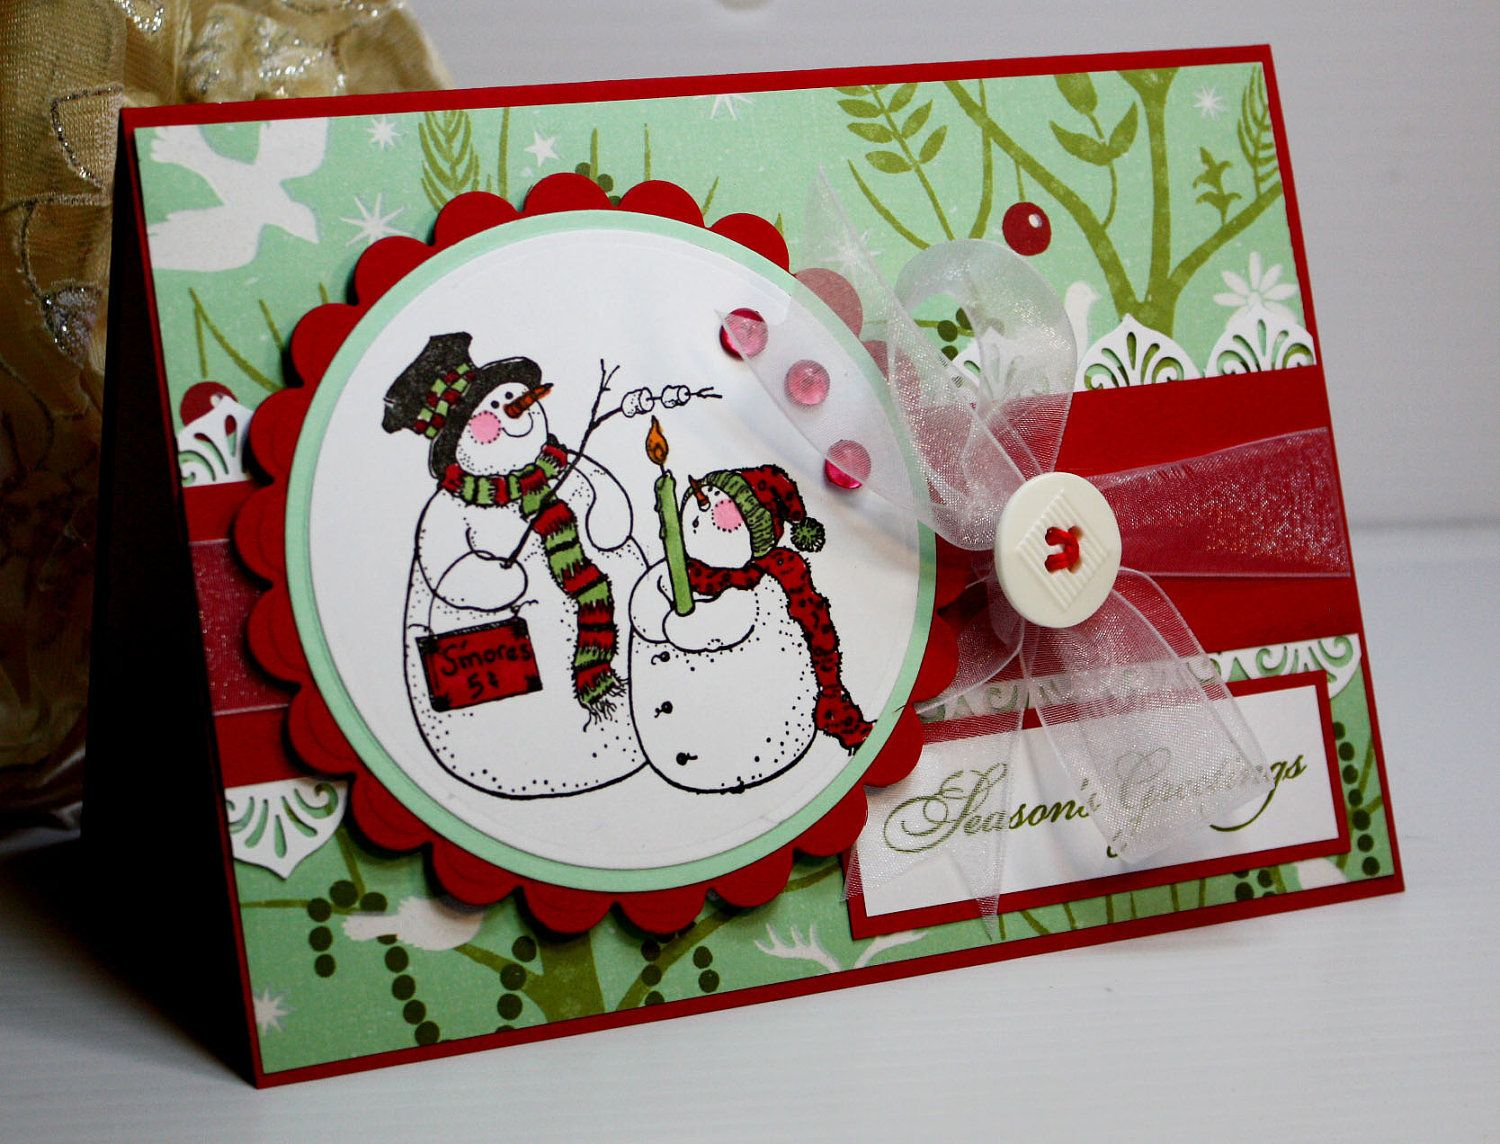 The Oh What Fun Holiday Photo Card Shares Ten Pictures In A Collage Style Design Measuring 5x7 Christmas Photo Cards Christmas Card Collage Holiday Design Card